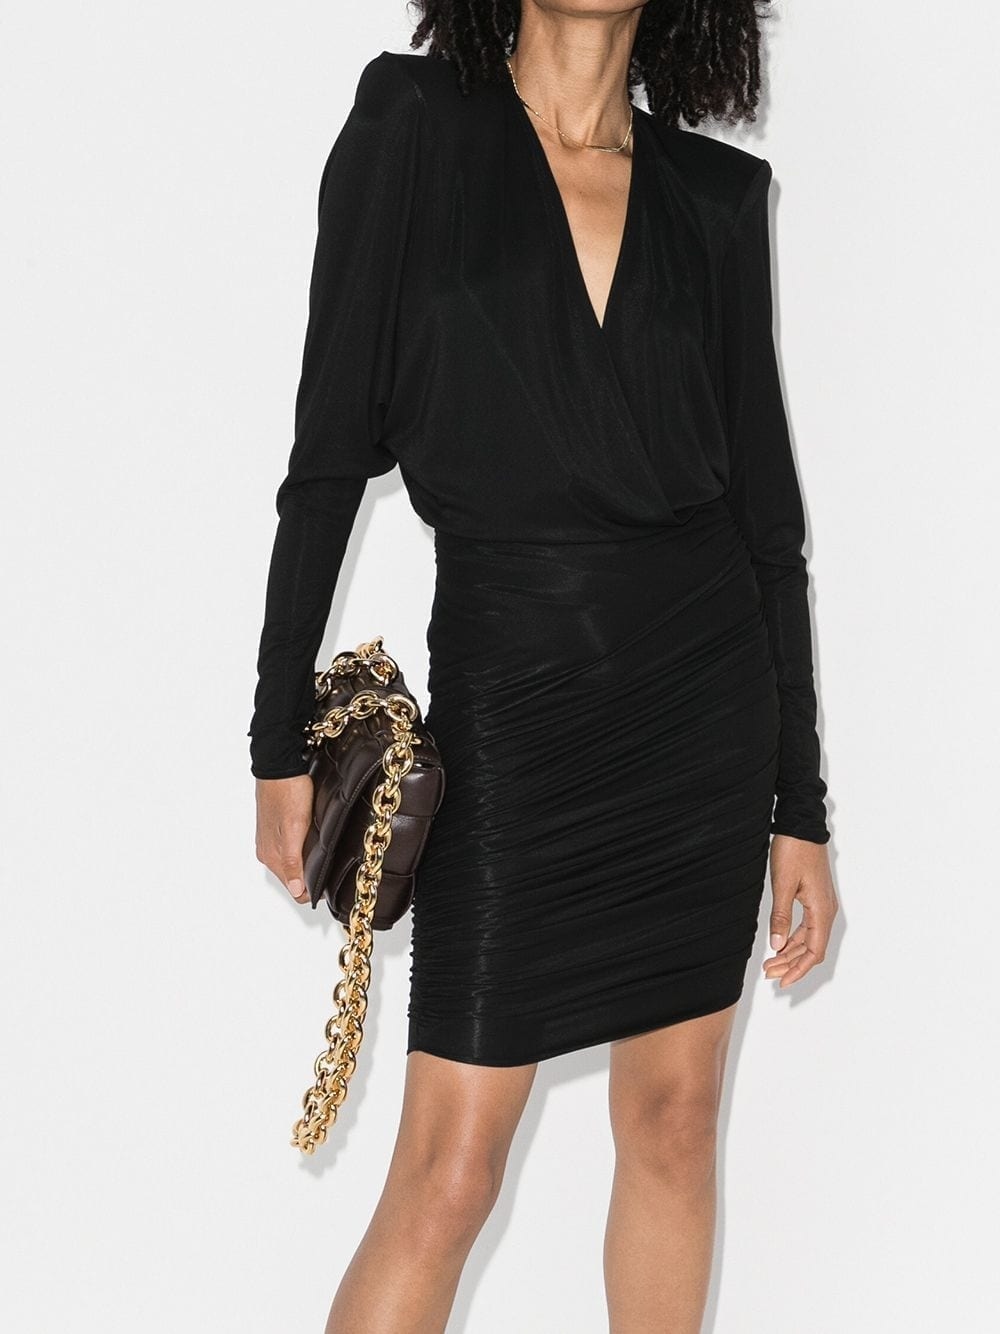 ALEXANDRE VAUTHIER Batwing Sleeve Bodycon Mini Dress